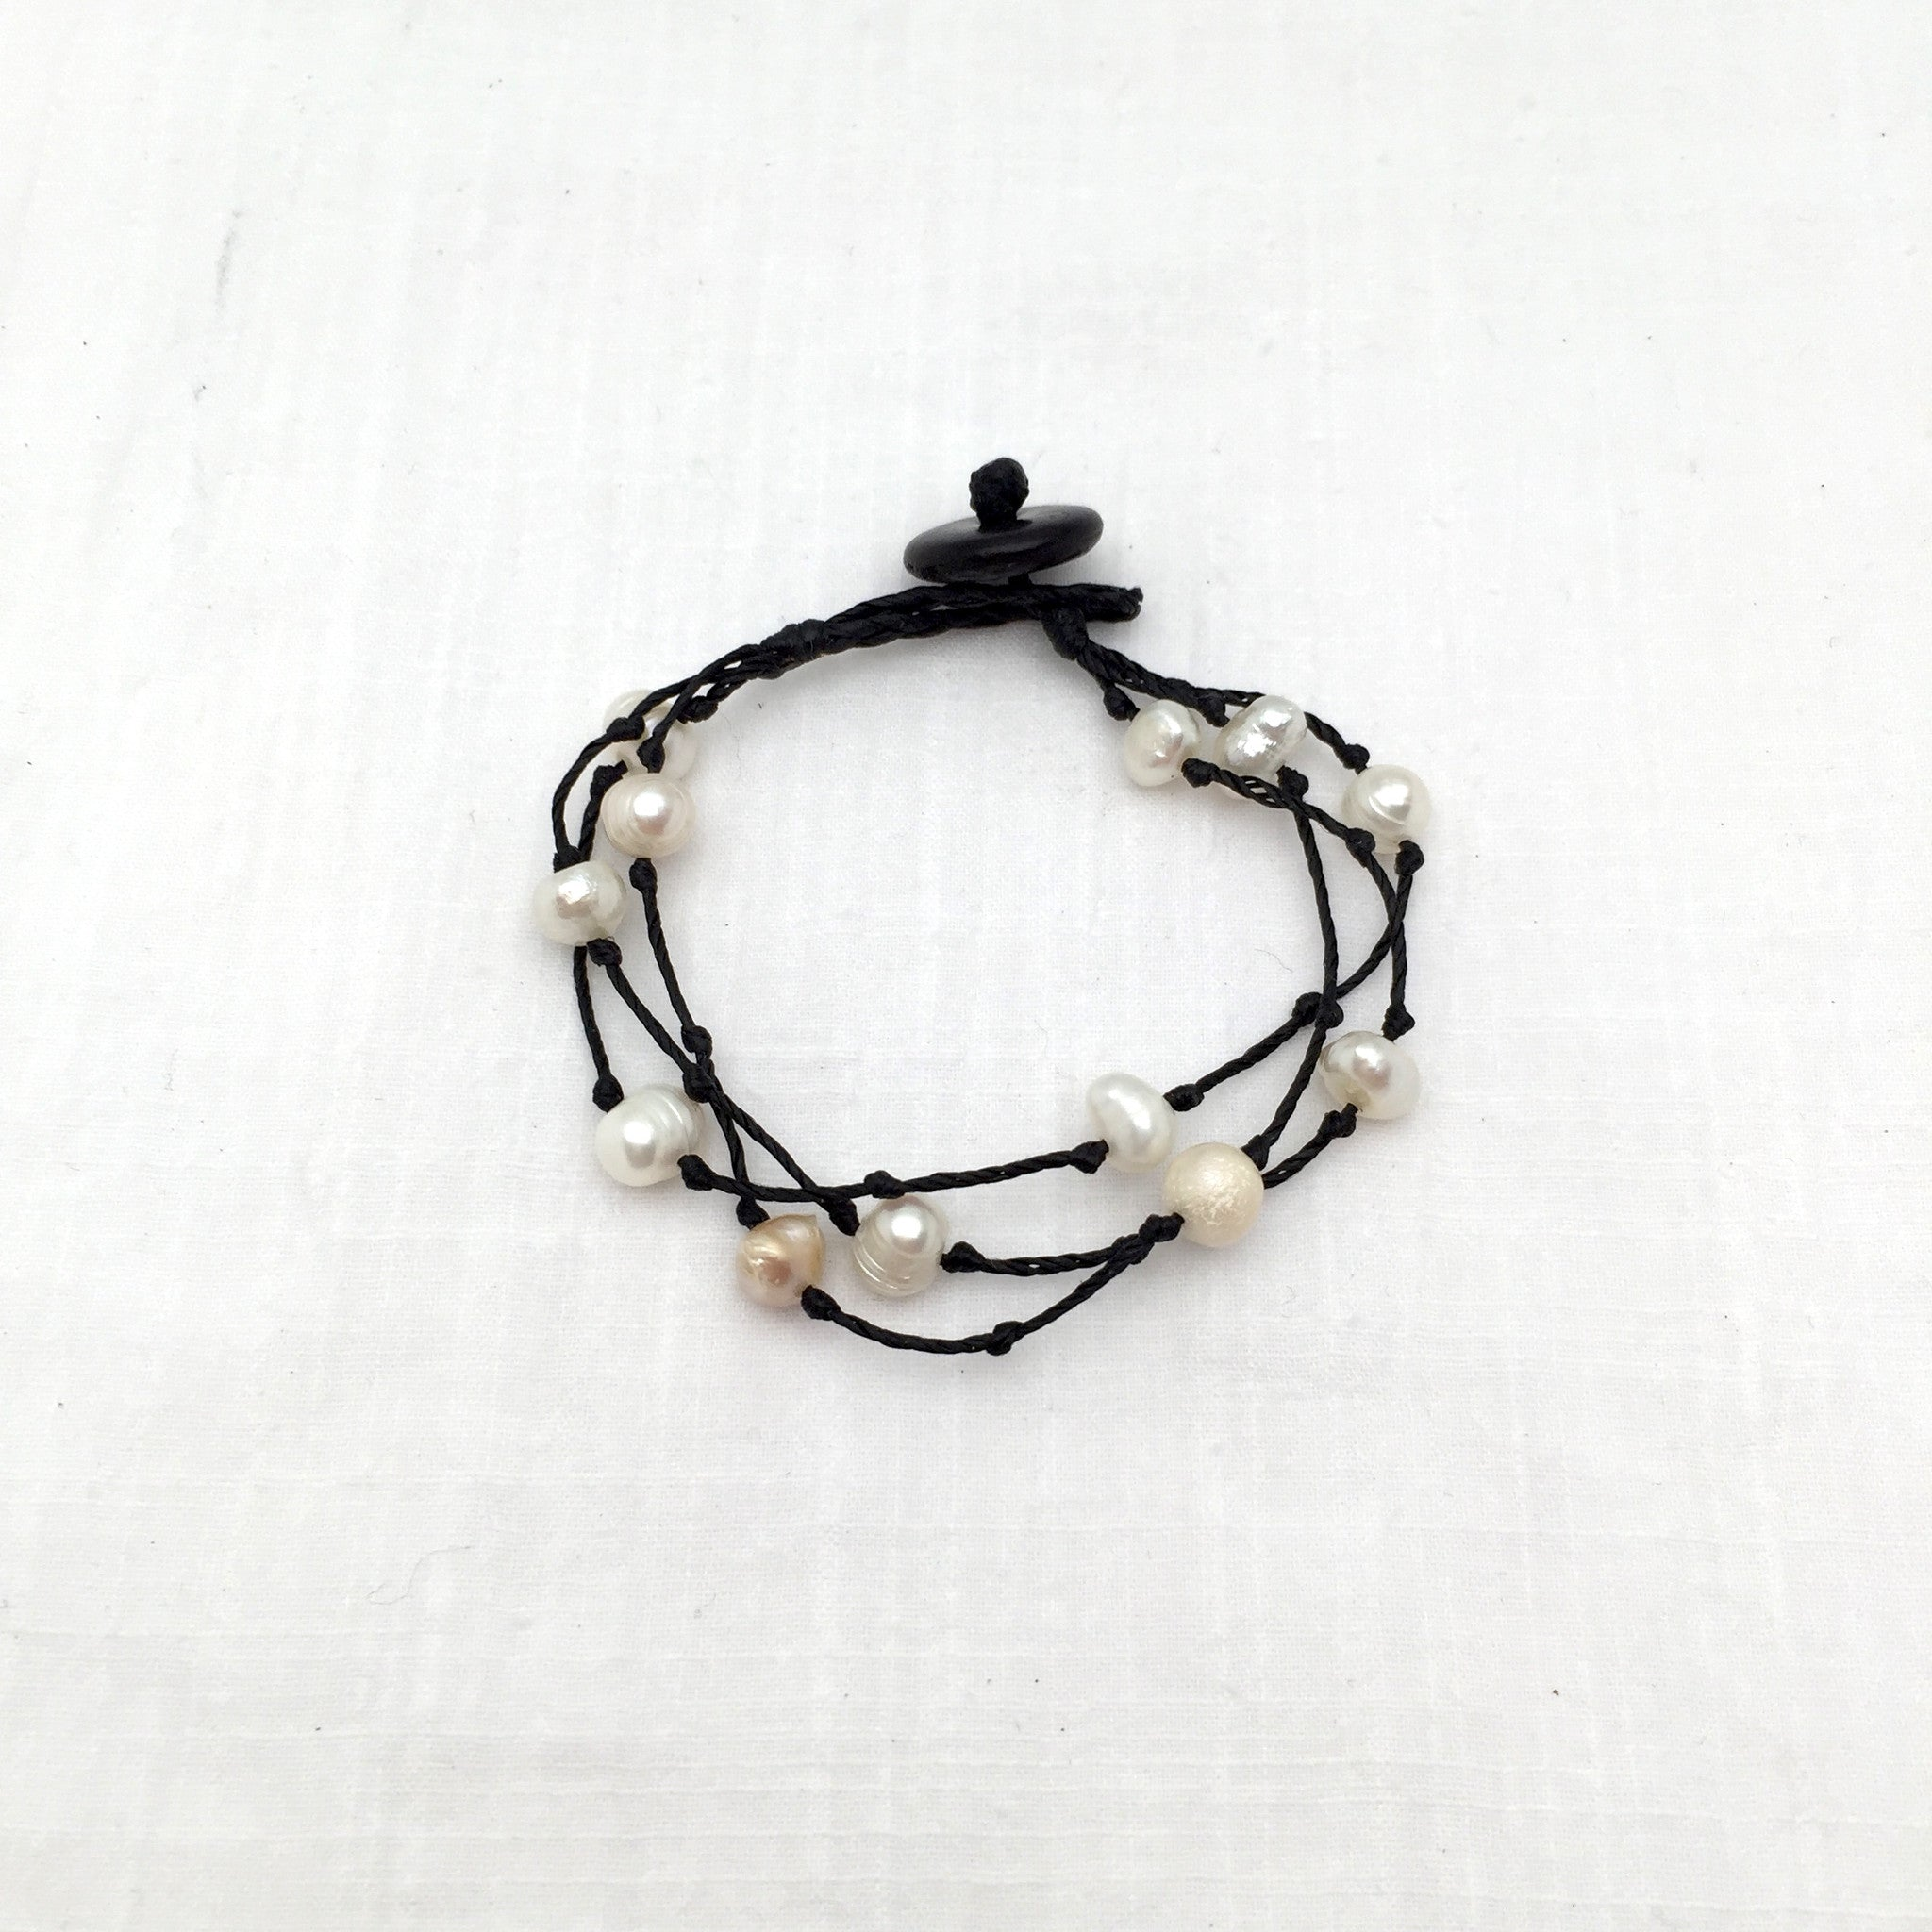 Maria knotted pearl bracelet